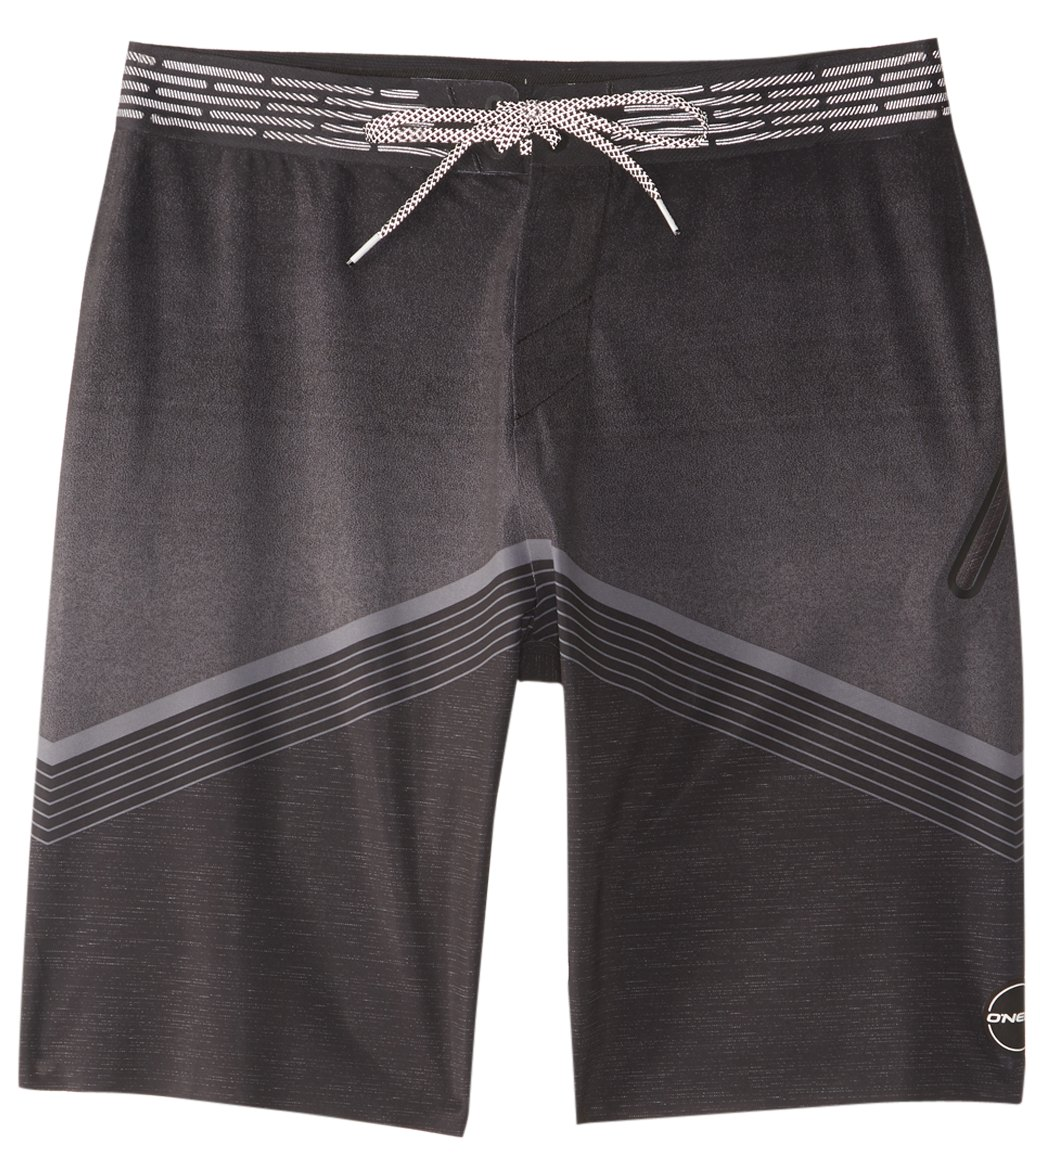 0ad2d078ed O'Neill Men's Hyperfreak Hydro Boardshort at SwimOutlet.com - Free Shipping